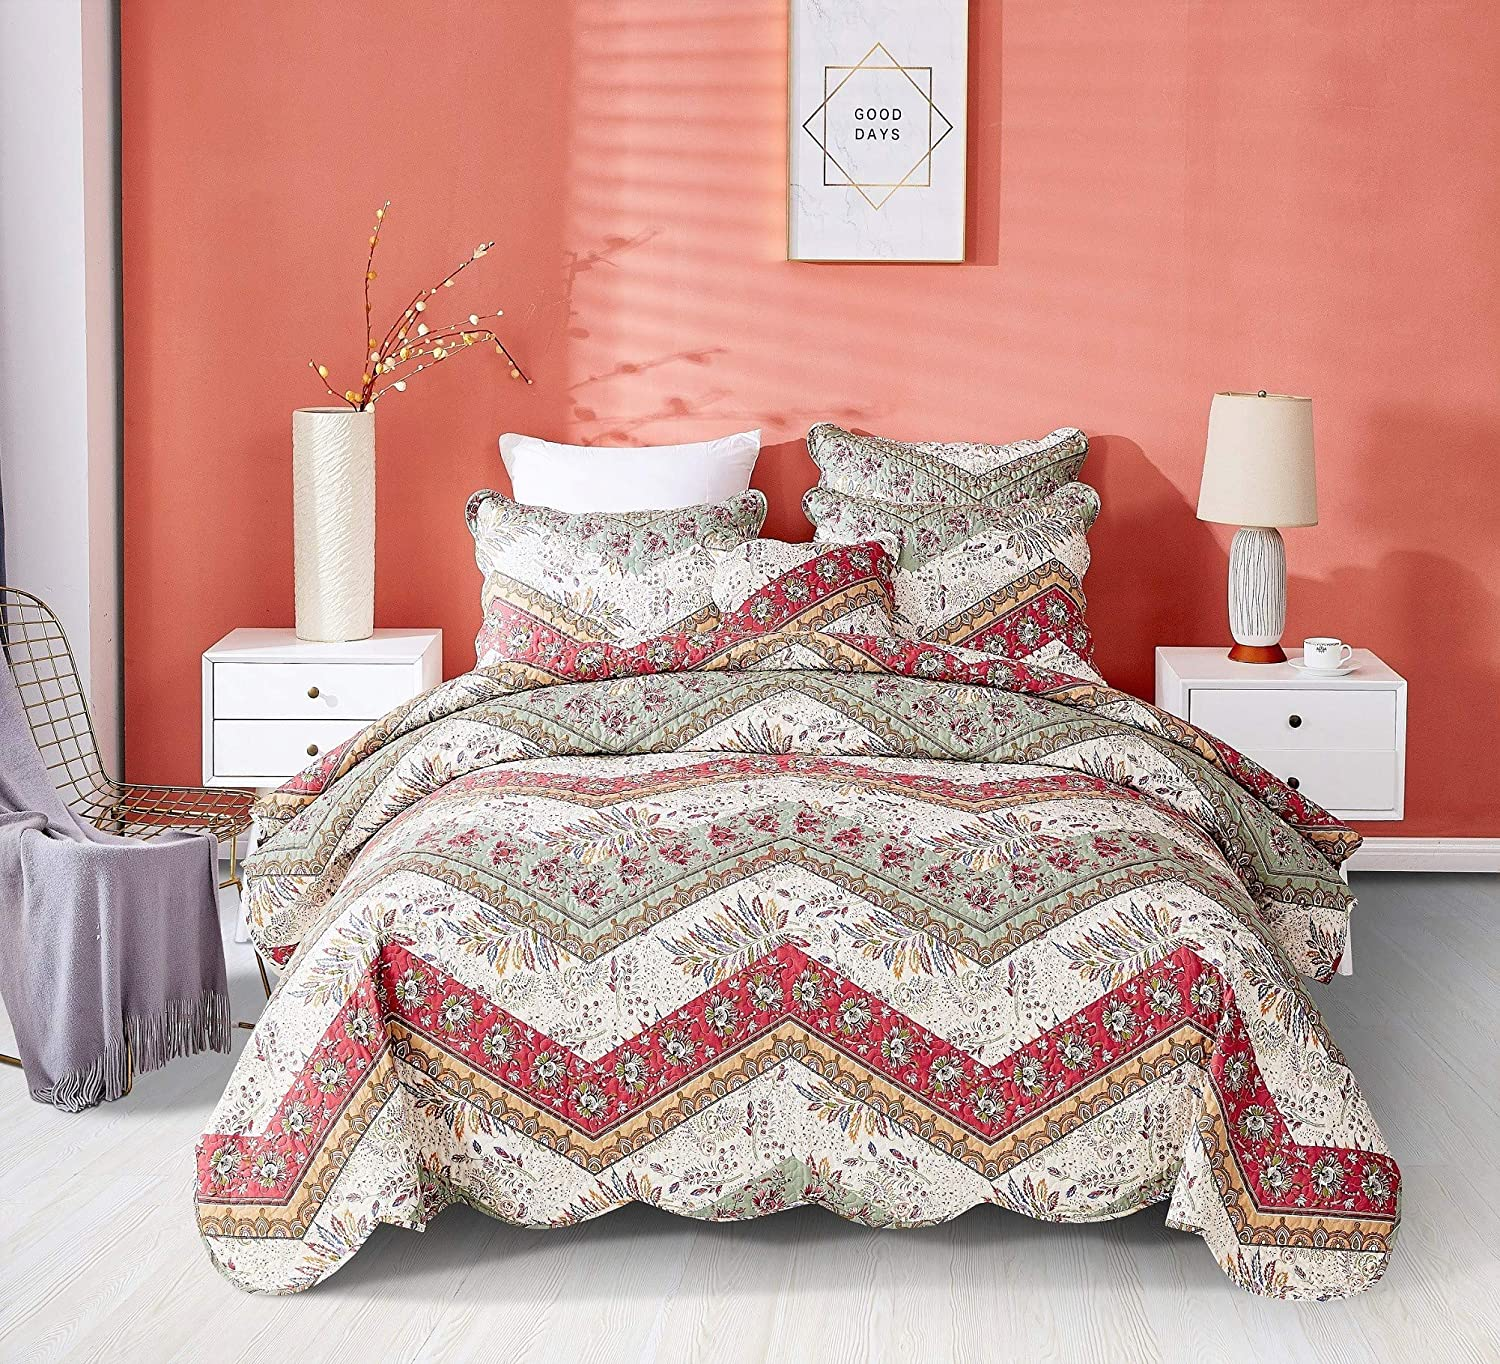 DaDa Bedding Bohemian Patchwork Bedspread - Rustic Cranberry Sage Chevron Floral Quilted Coverlet Set - Scalloped Edges Multi-Colorful Orange Red Green & Ivory White Background - Queen - 3-Pieces